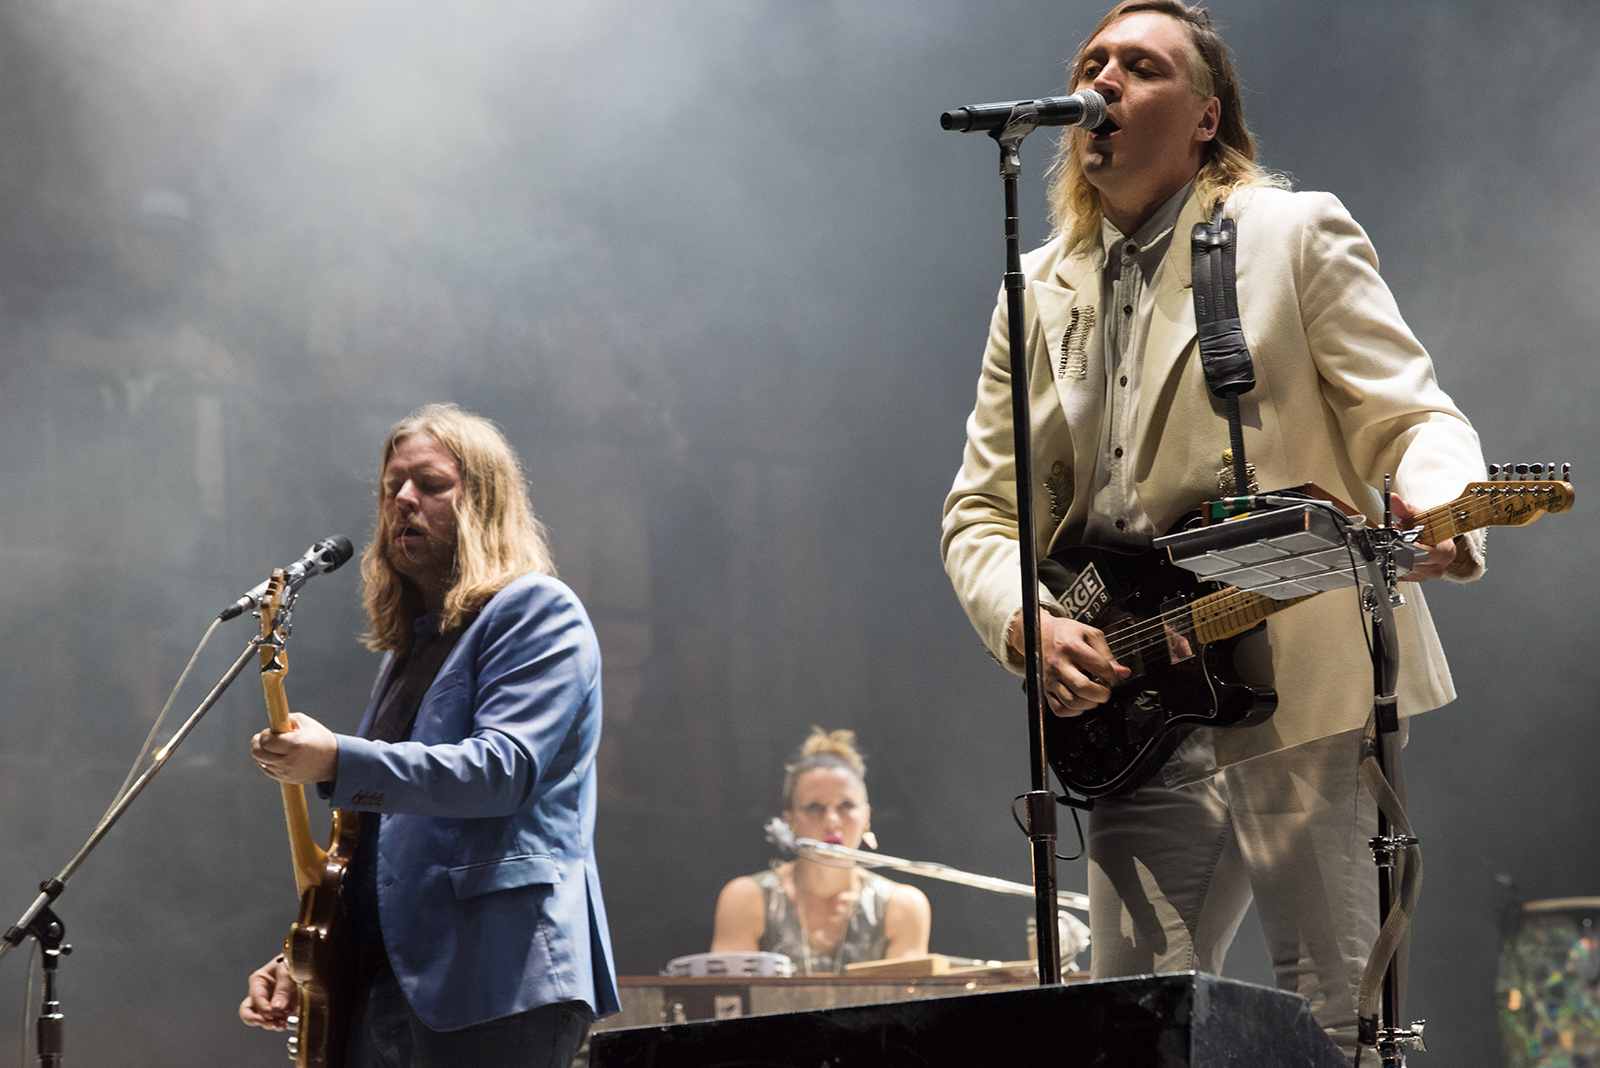 Arcade Fire plays Vancouver on October 14